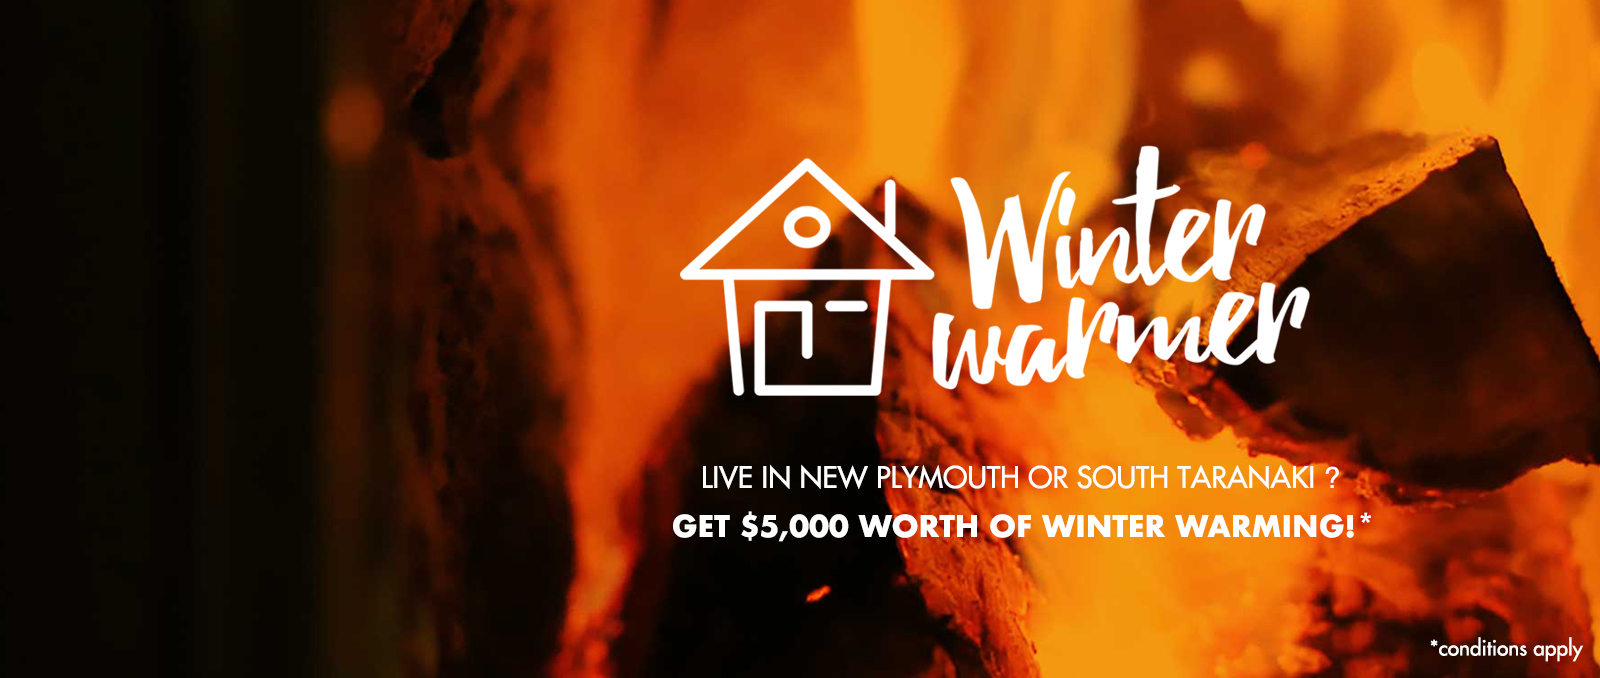 winter-warmer-banner